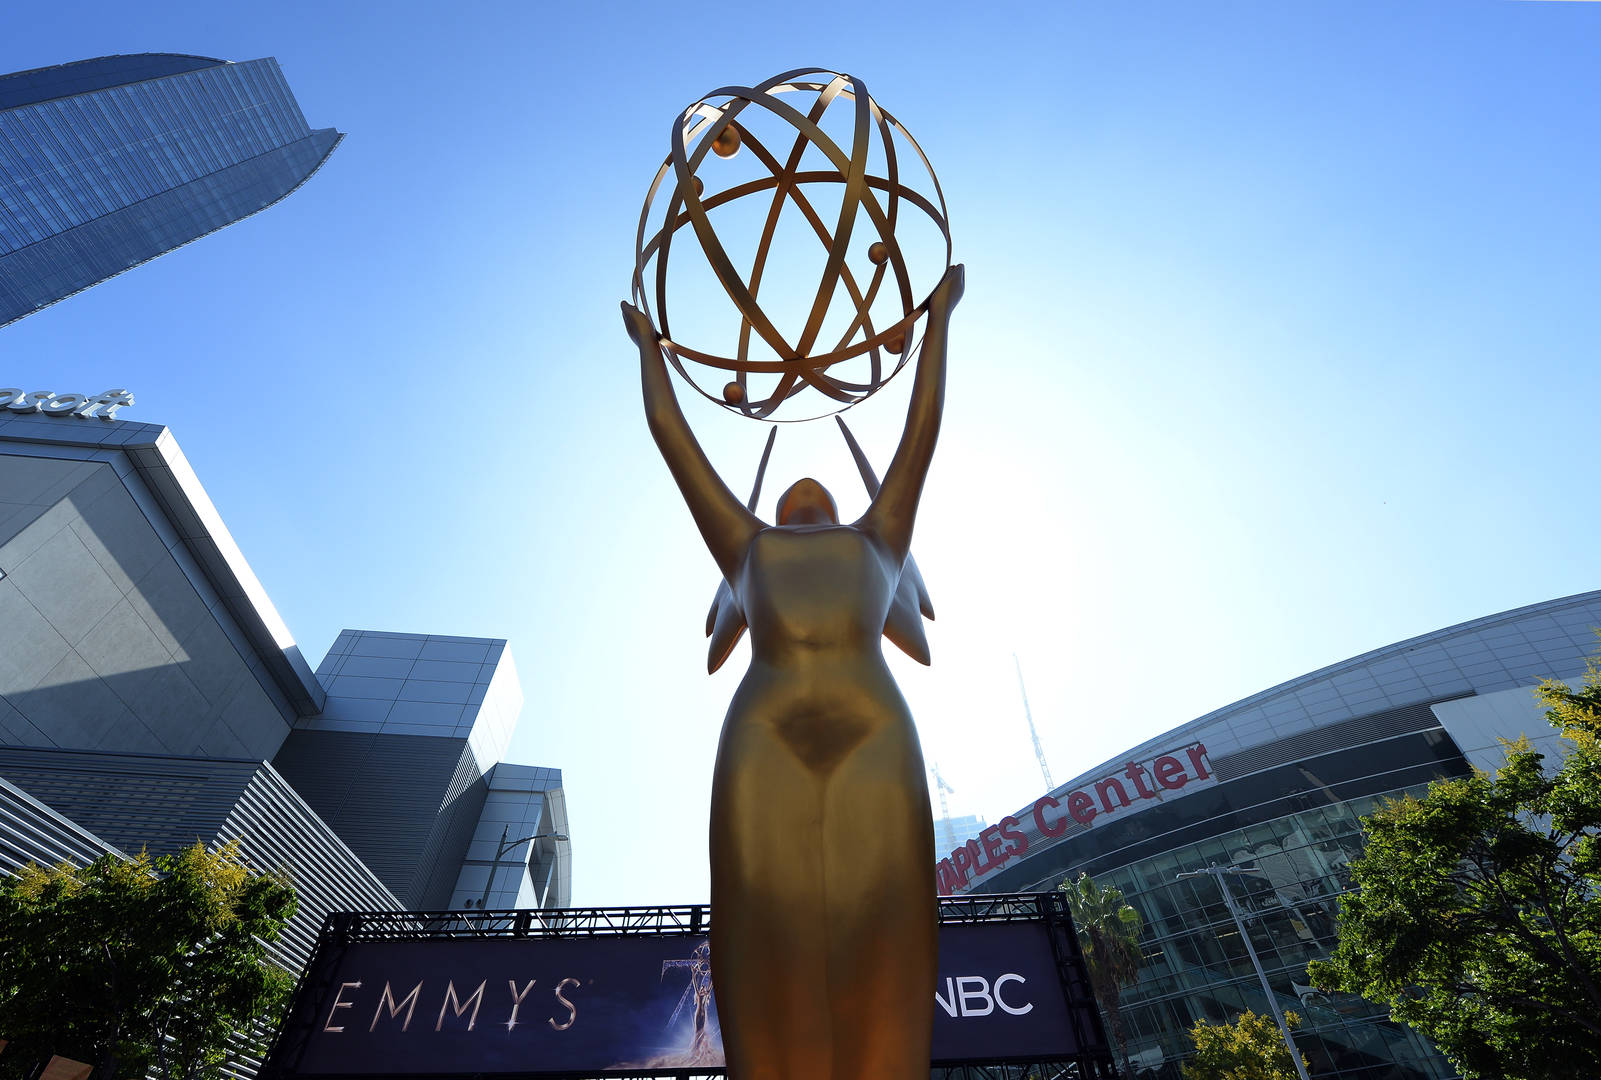 Emmys 2019: All The Nominations